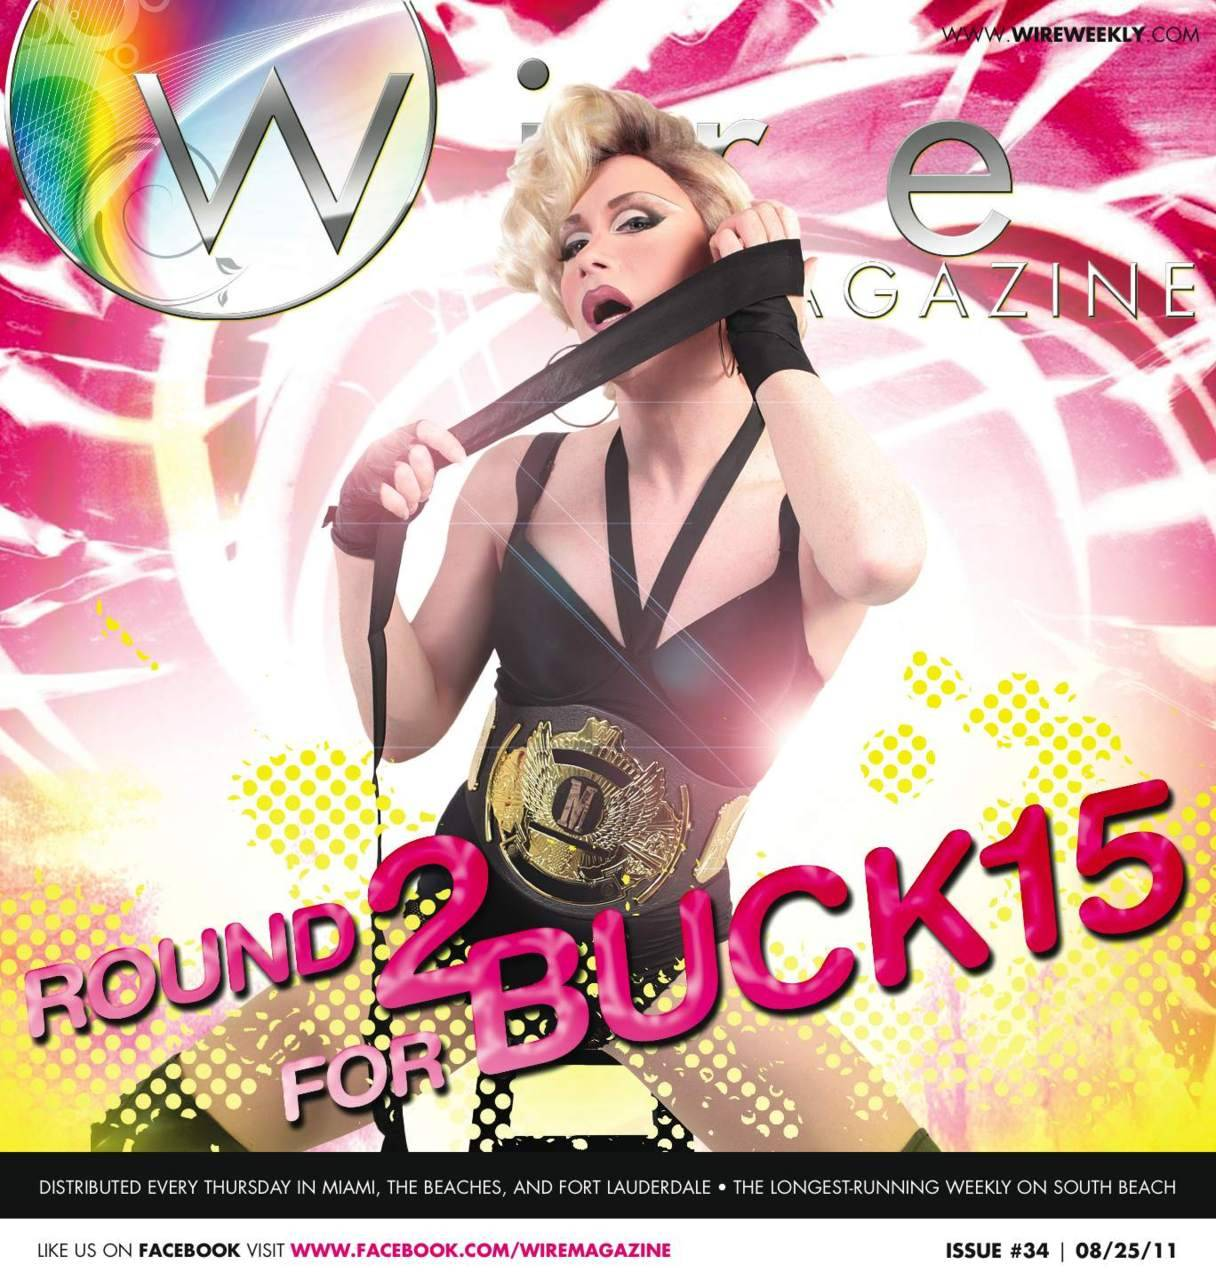 Wire Magazine Issue 34: ROUND 2 FOR BUCK15 Inside scoop from Daisy  & Edison on BUCK15 and what to expect at the new location Also Inside: See who's in line for this year's MTV Video Music Awards DJ PRIDE moves to TWIST Thursday nights Catch a glimpse of SEX AND ZEN- the first 3D Erotic Movie Don't forget to see what photos made the cut in this weeks photo albums READ THE FULL ISSUE AT WWW.WIREWEEKLY.COM and click on the cover!